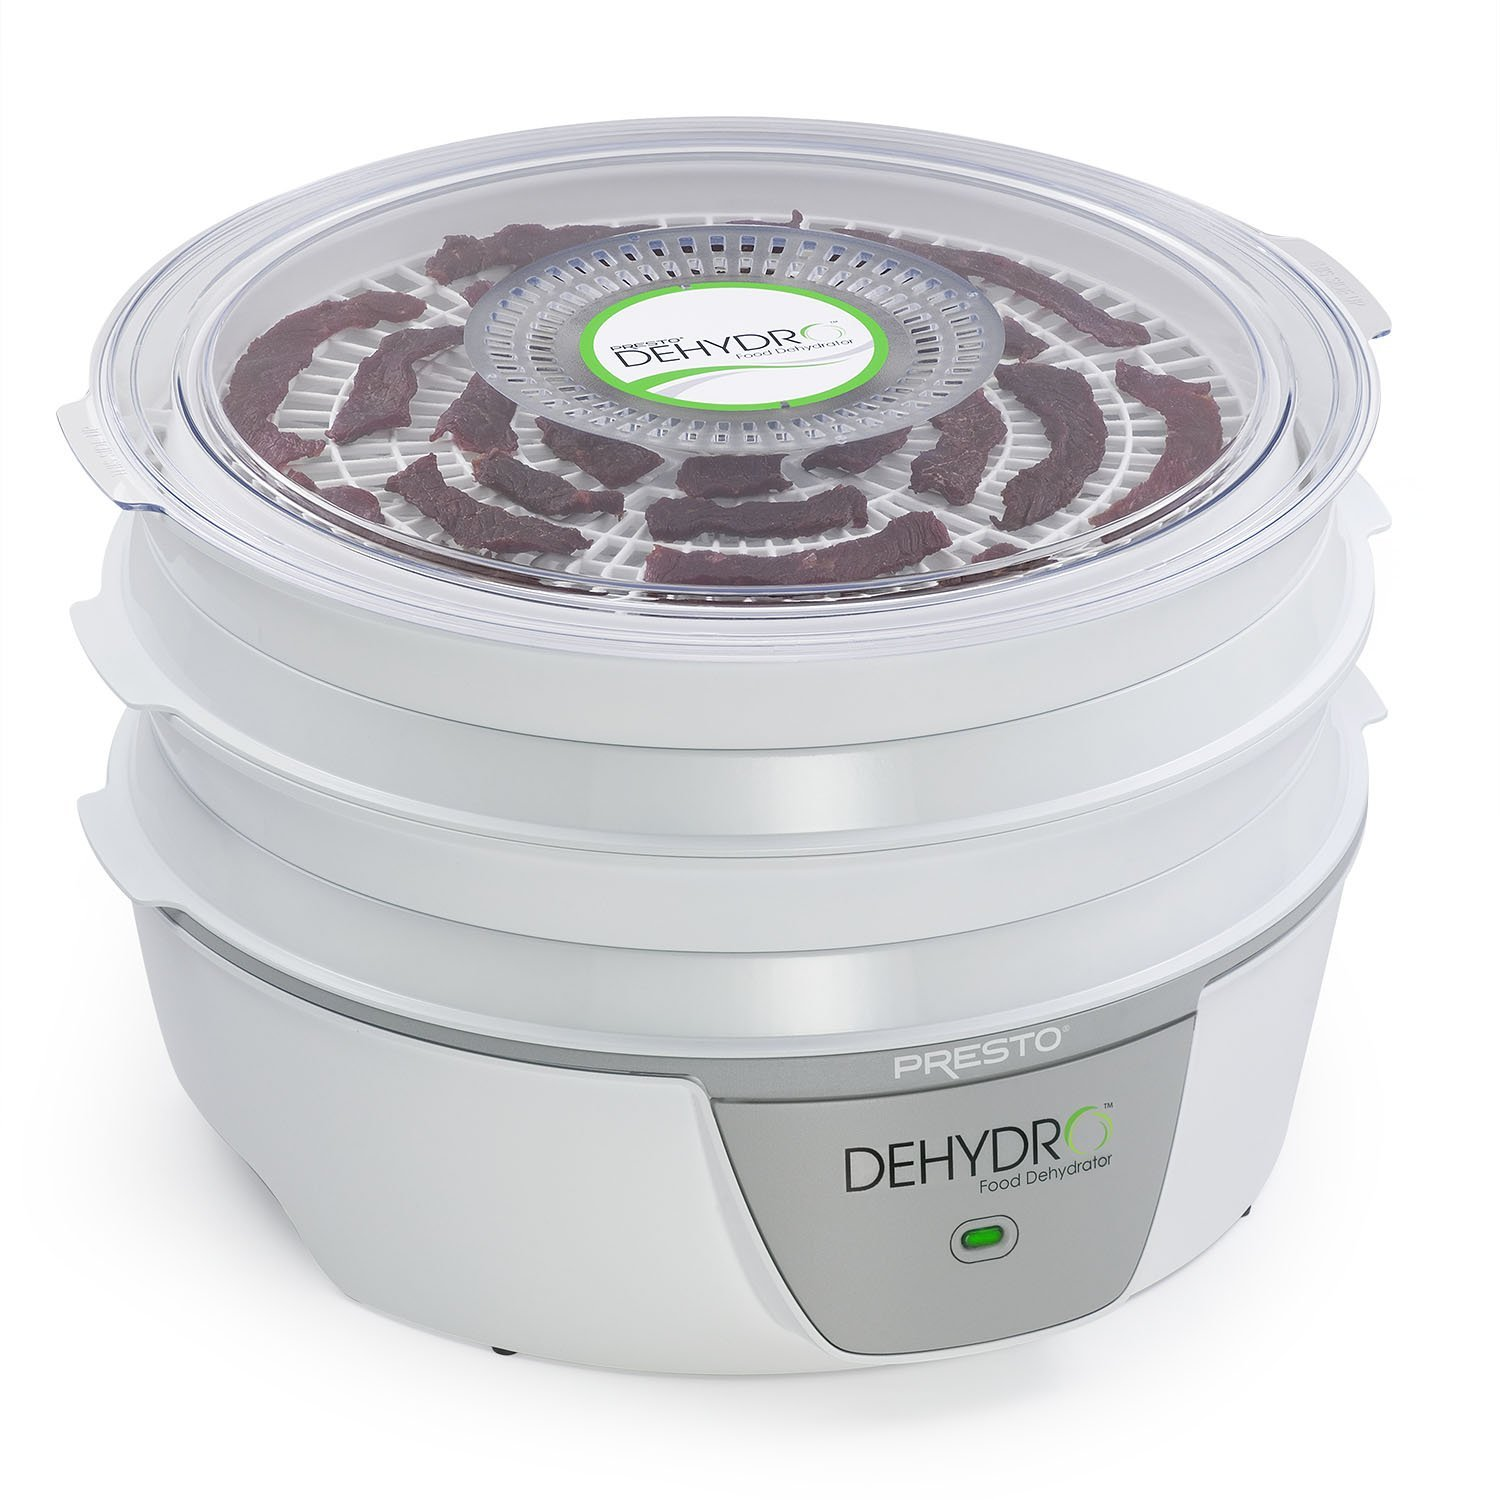 Presto 06300 Dehydro Electric food dehydrator for beef jerky